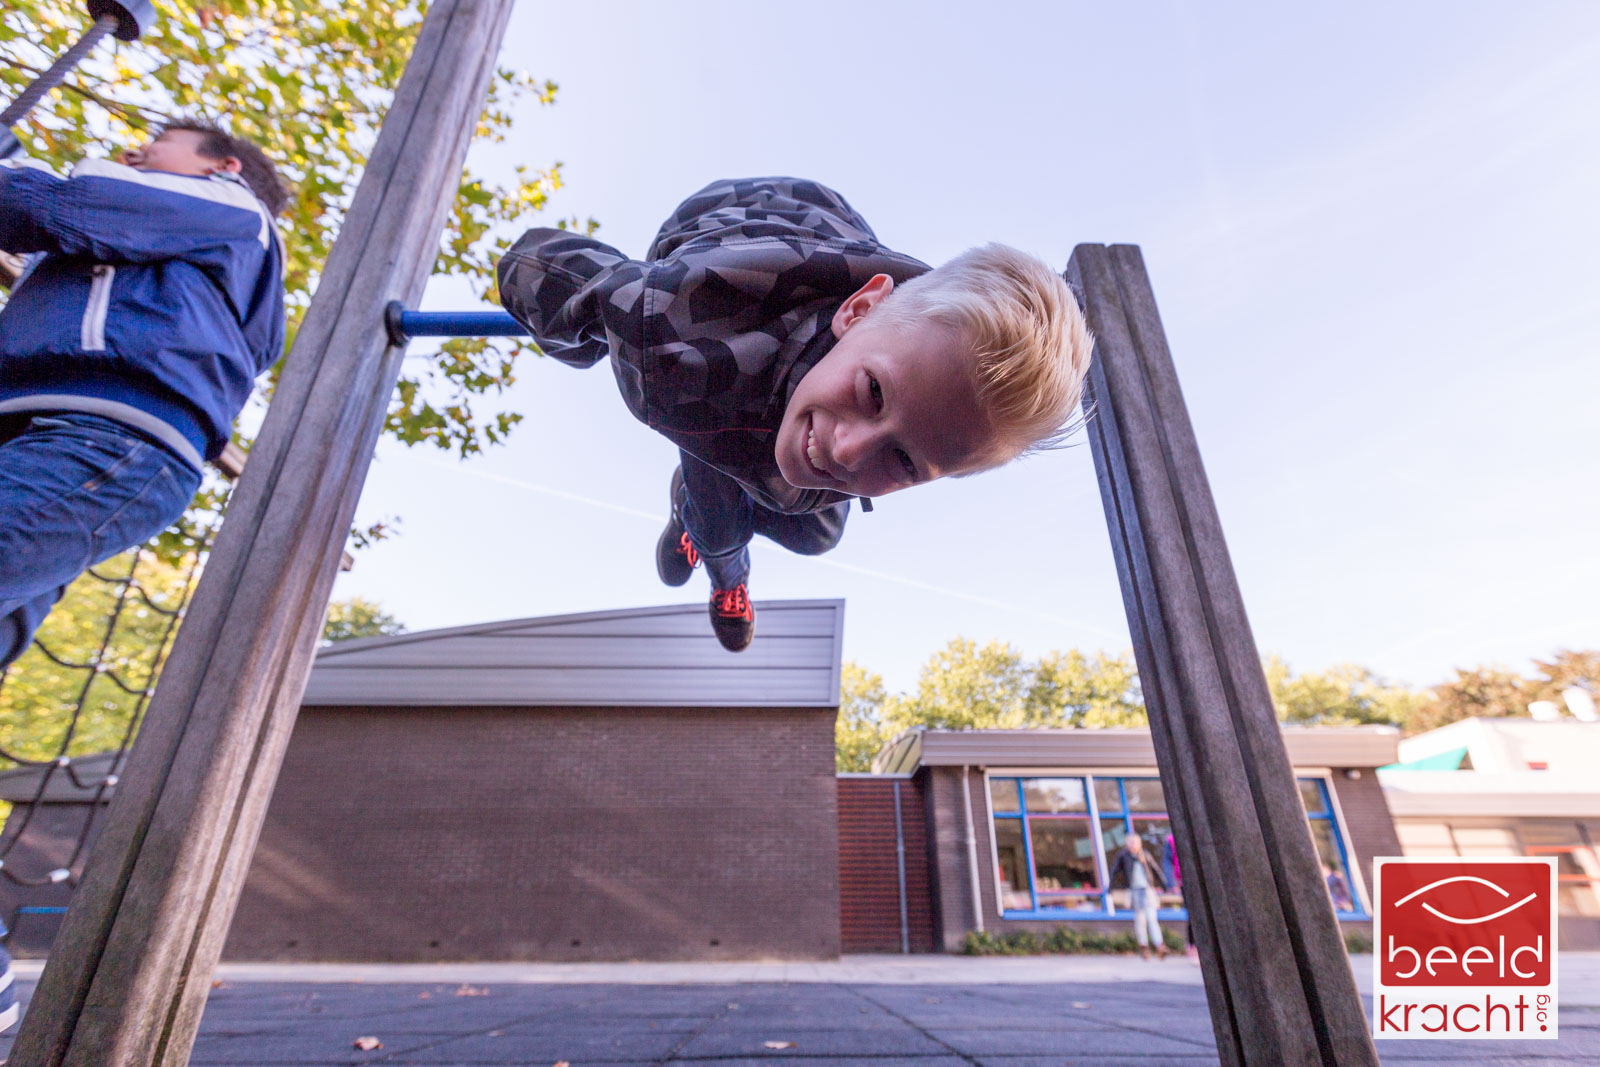 Boy having fun on a climbing frame on the playground of the school.